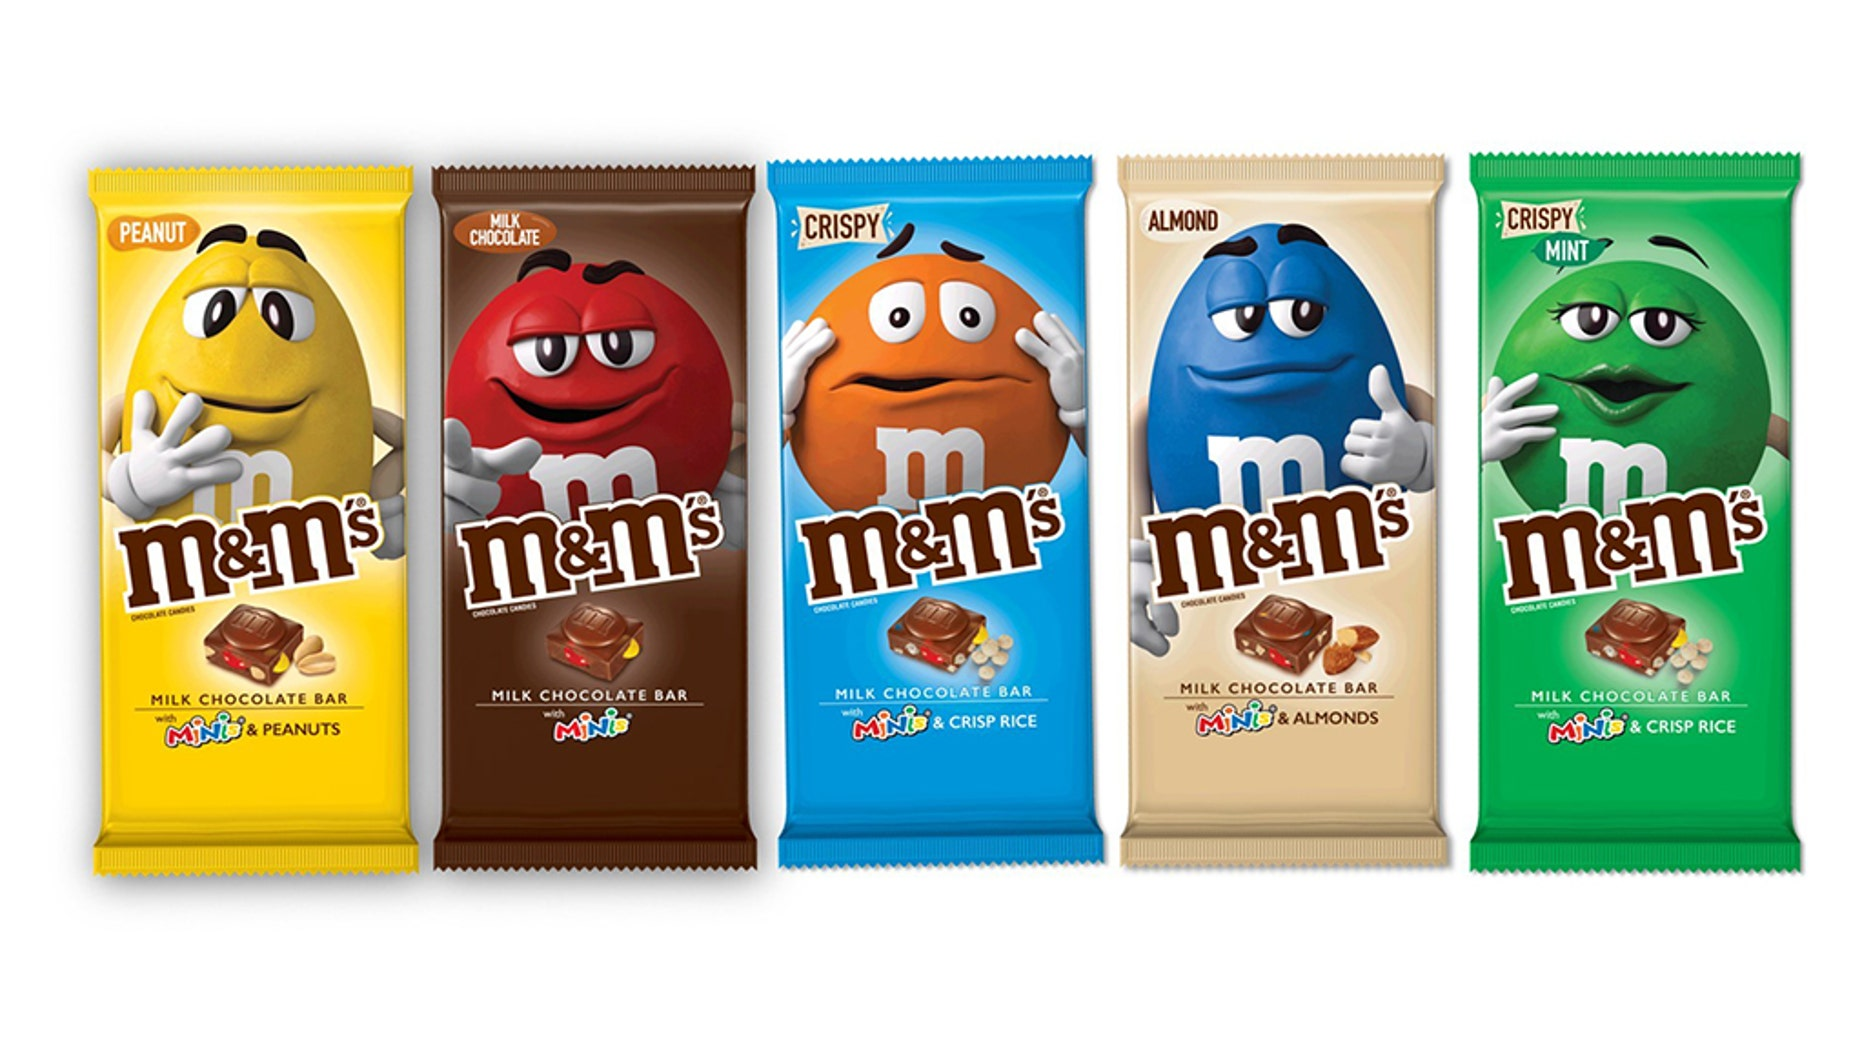 M&M's Chocolate Bars will be available in December, Mars Incorporated says.